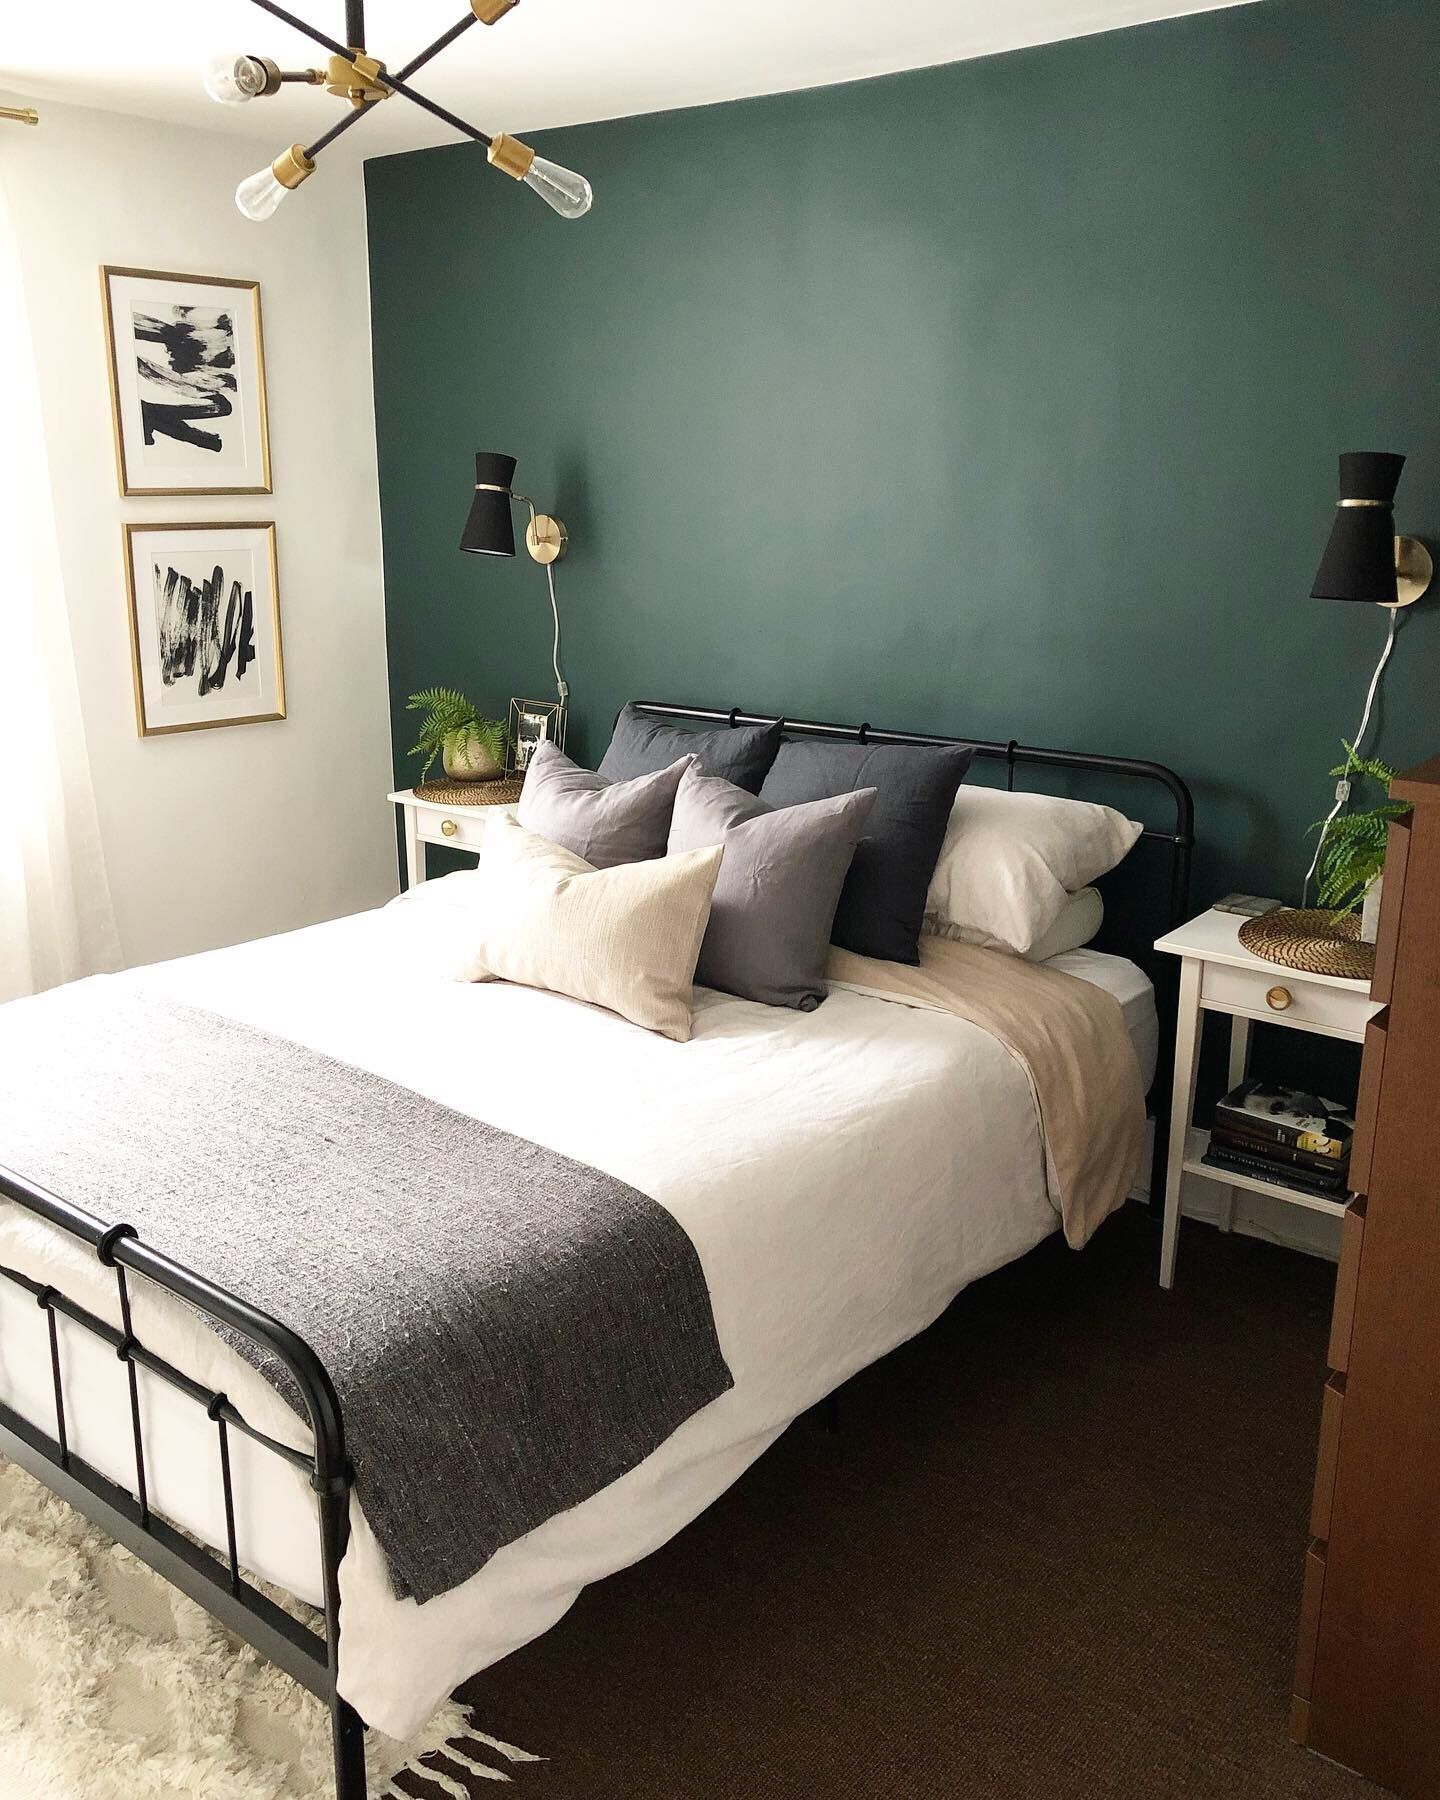 Pin by Lacey Lee on SFA 20 in 2020 Green master bedroom